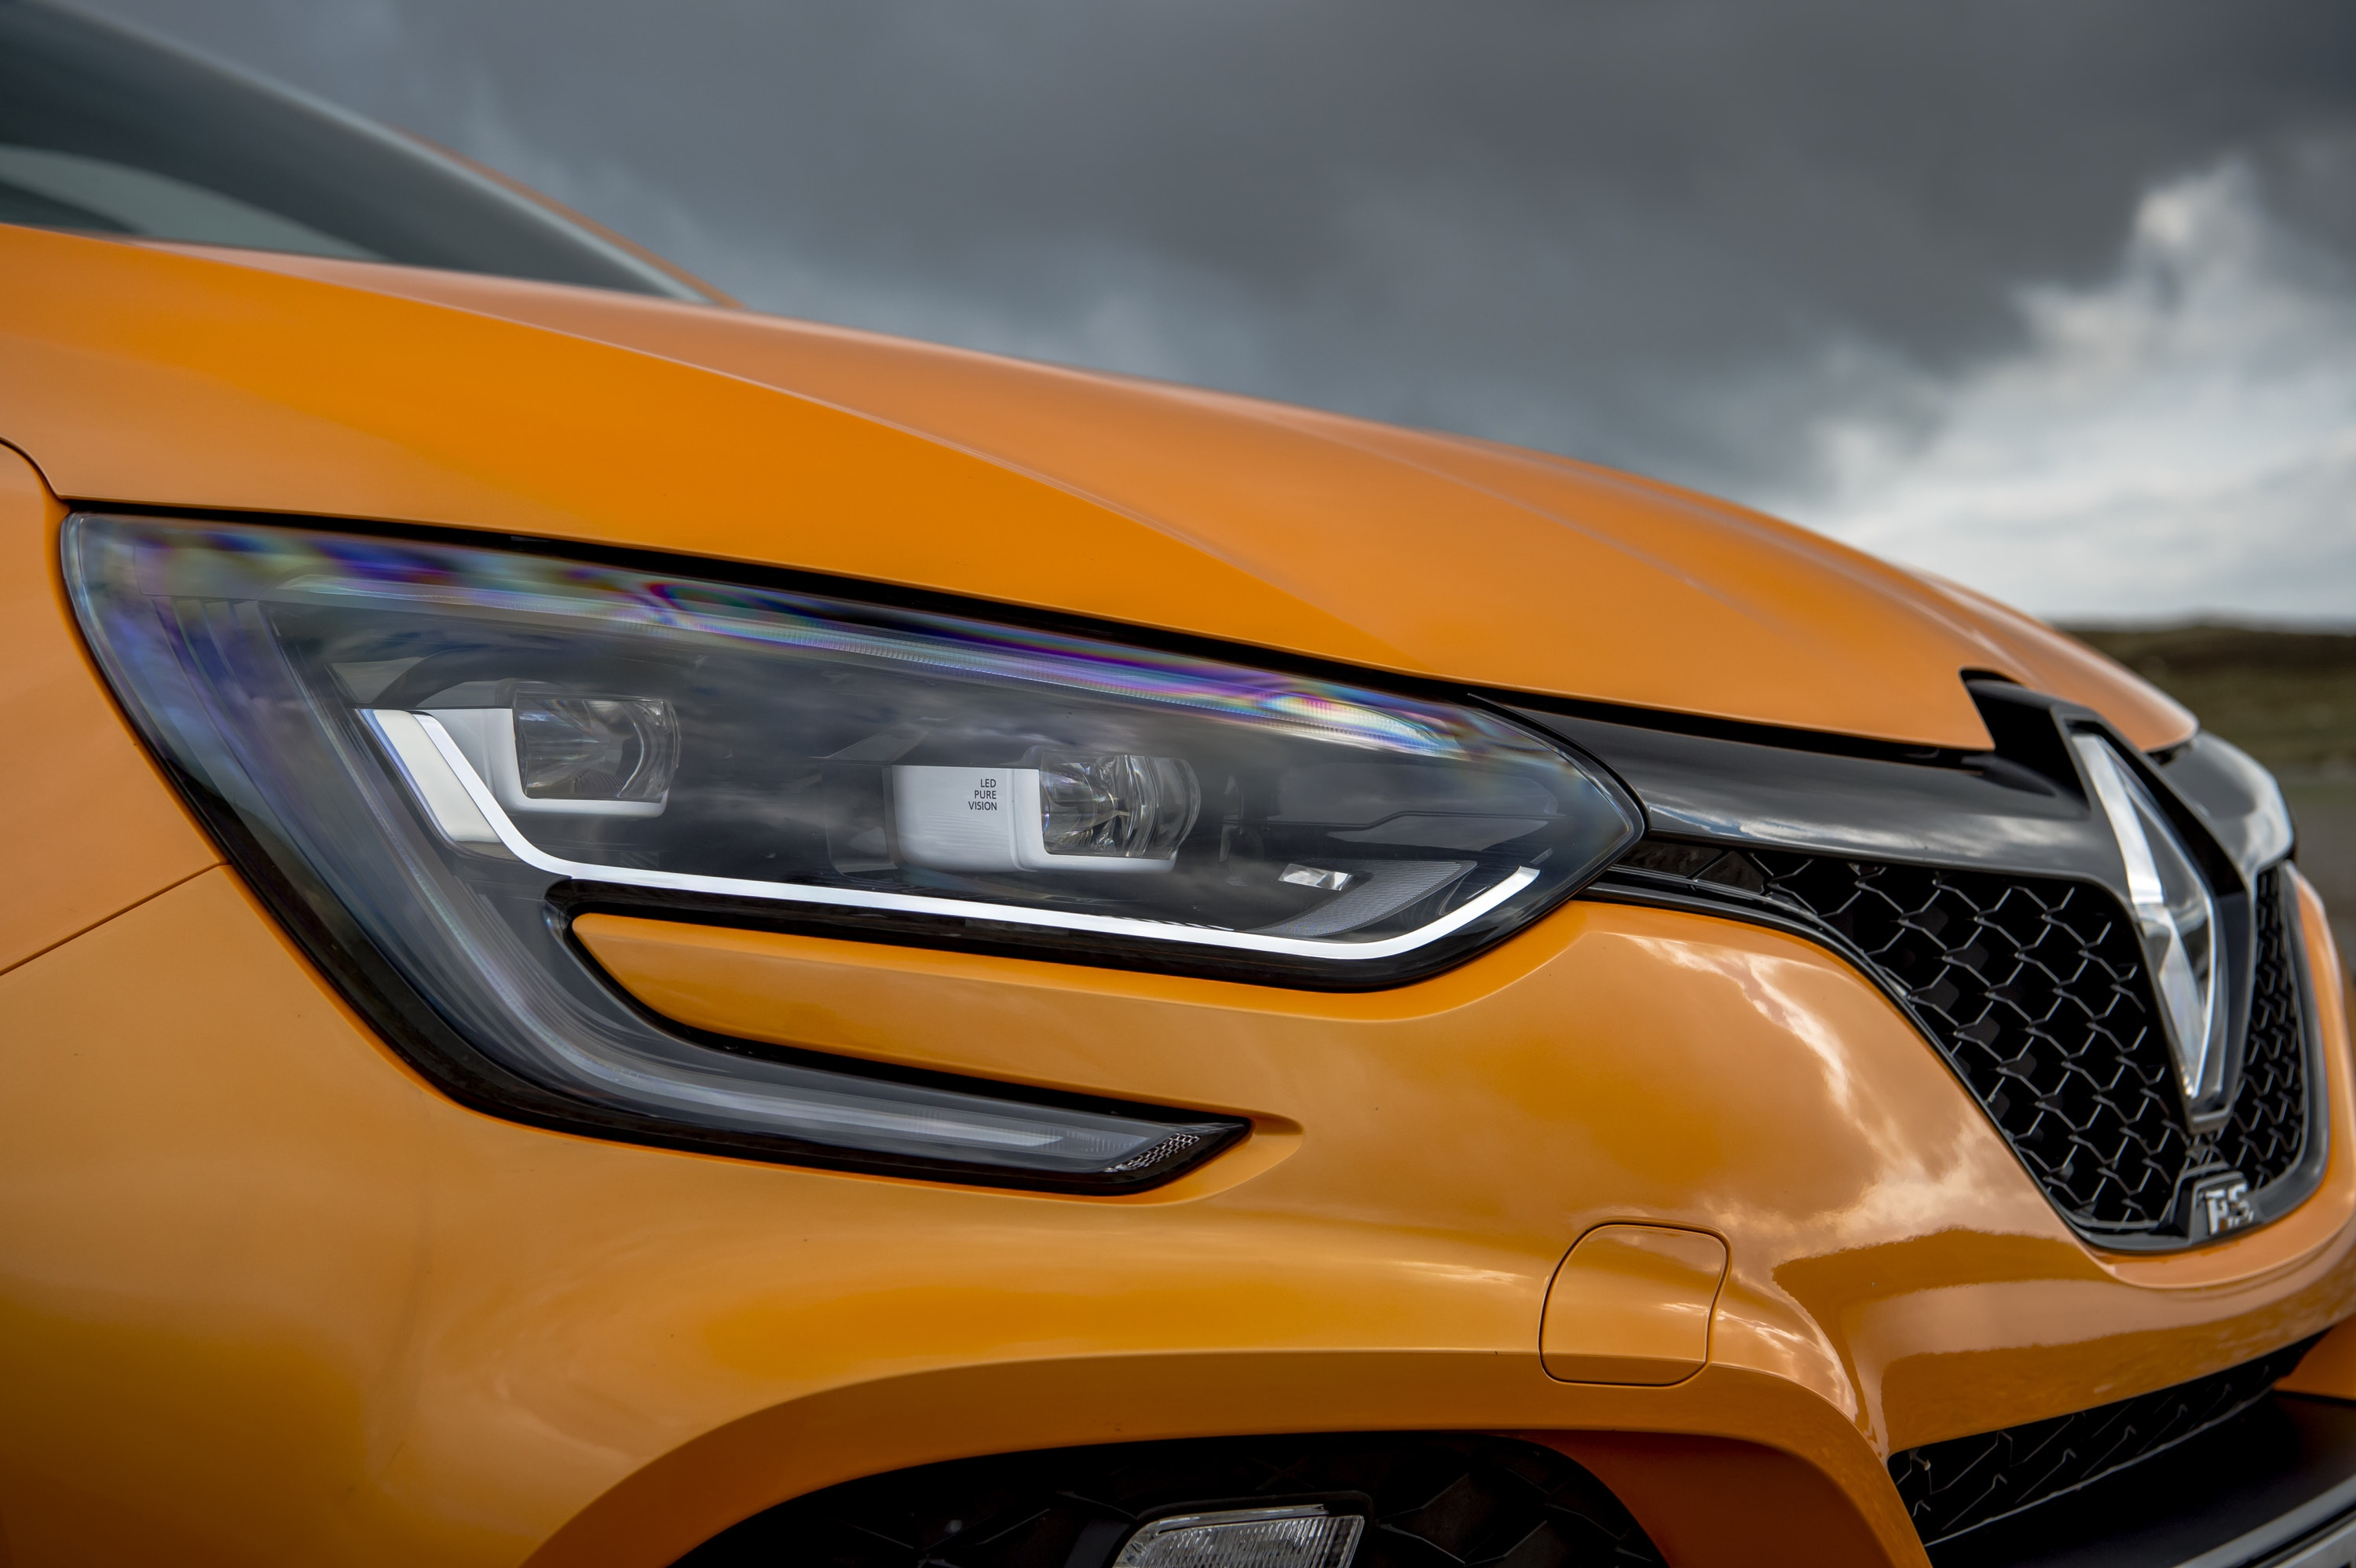 close up of headlight of a Renault Megane